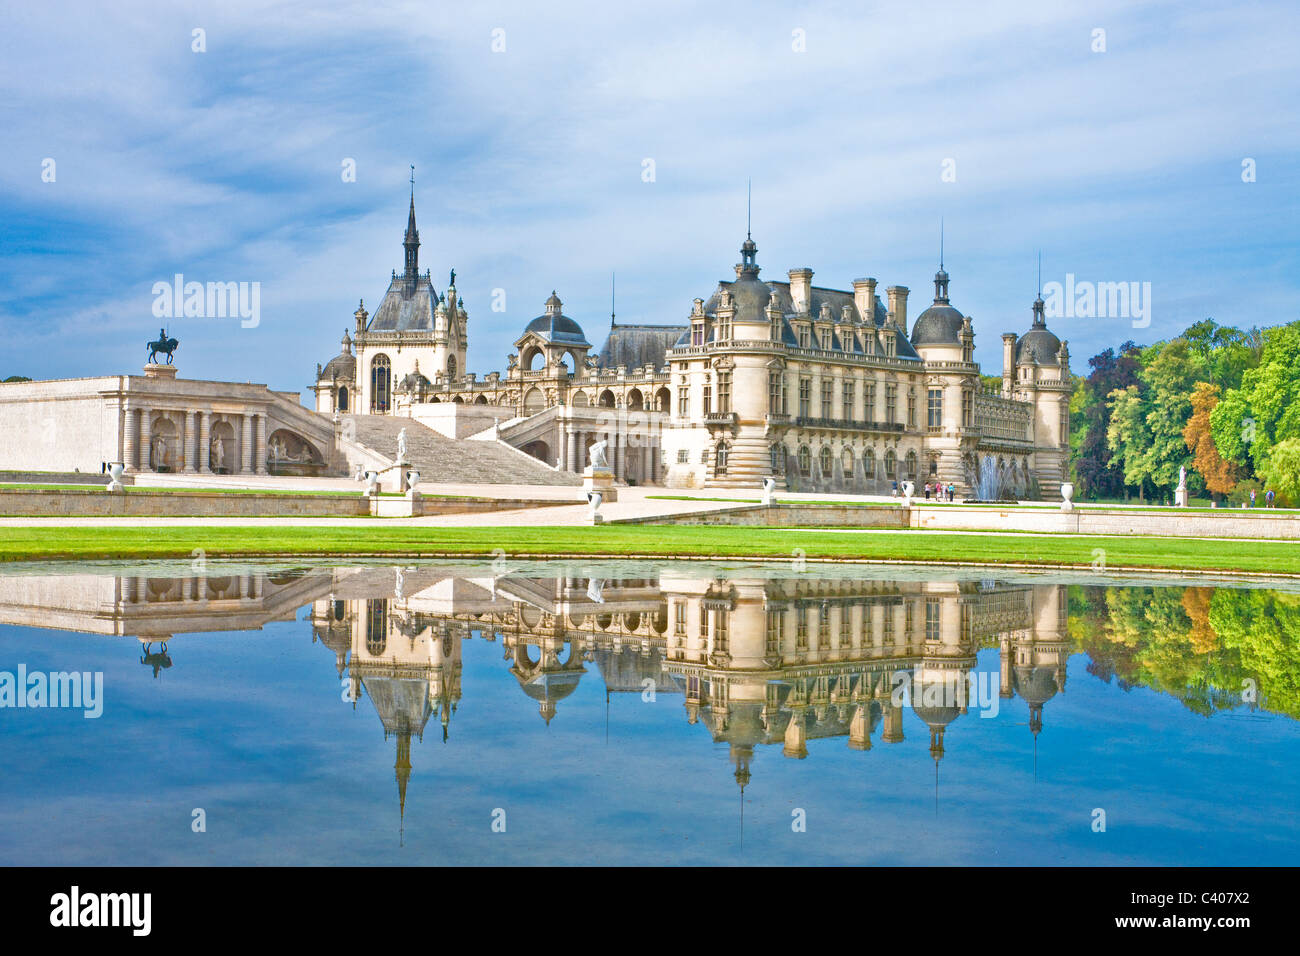 France, Europe, Villandry, Picardy, castle, world cultural heritage, water, reflection Stock Photo